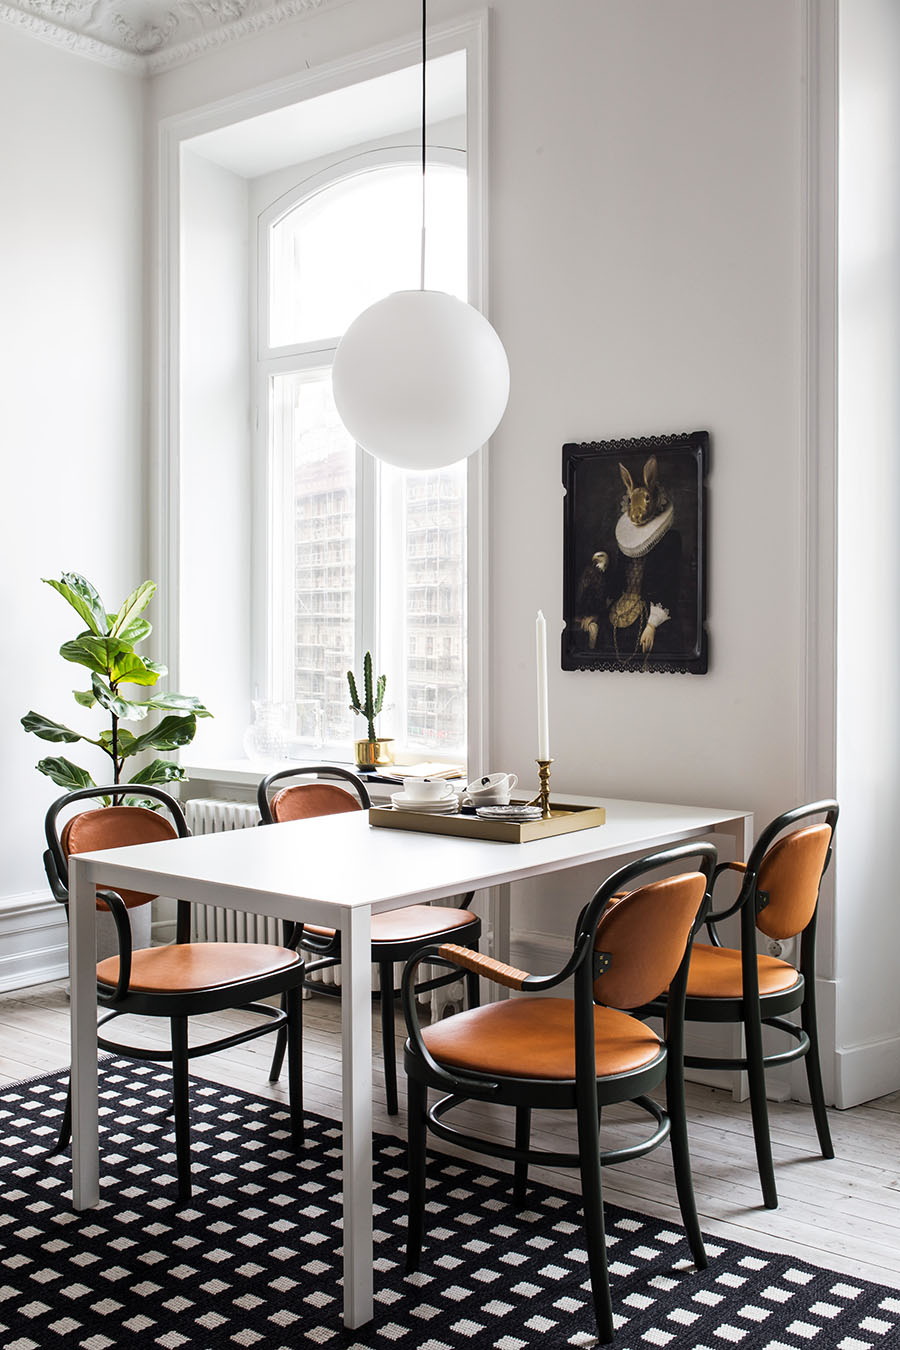 Scandinavian interior, dining room, black and white carpet, bright apartment